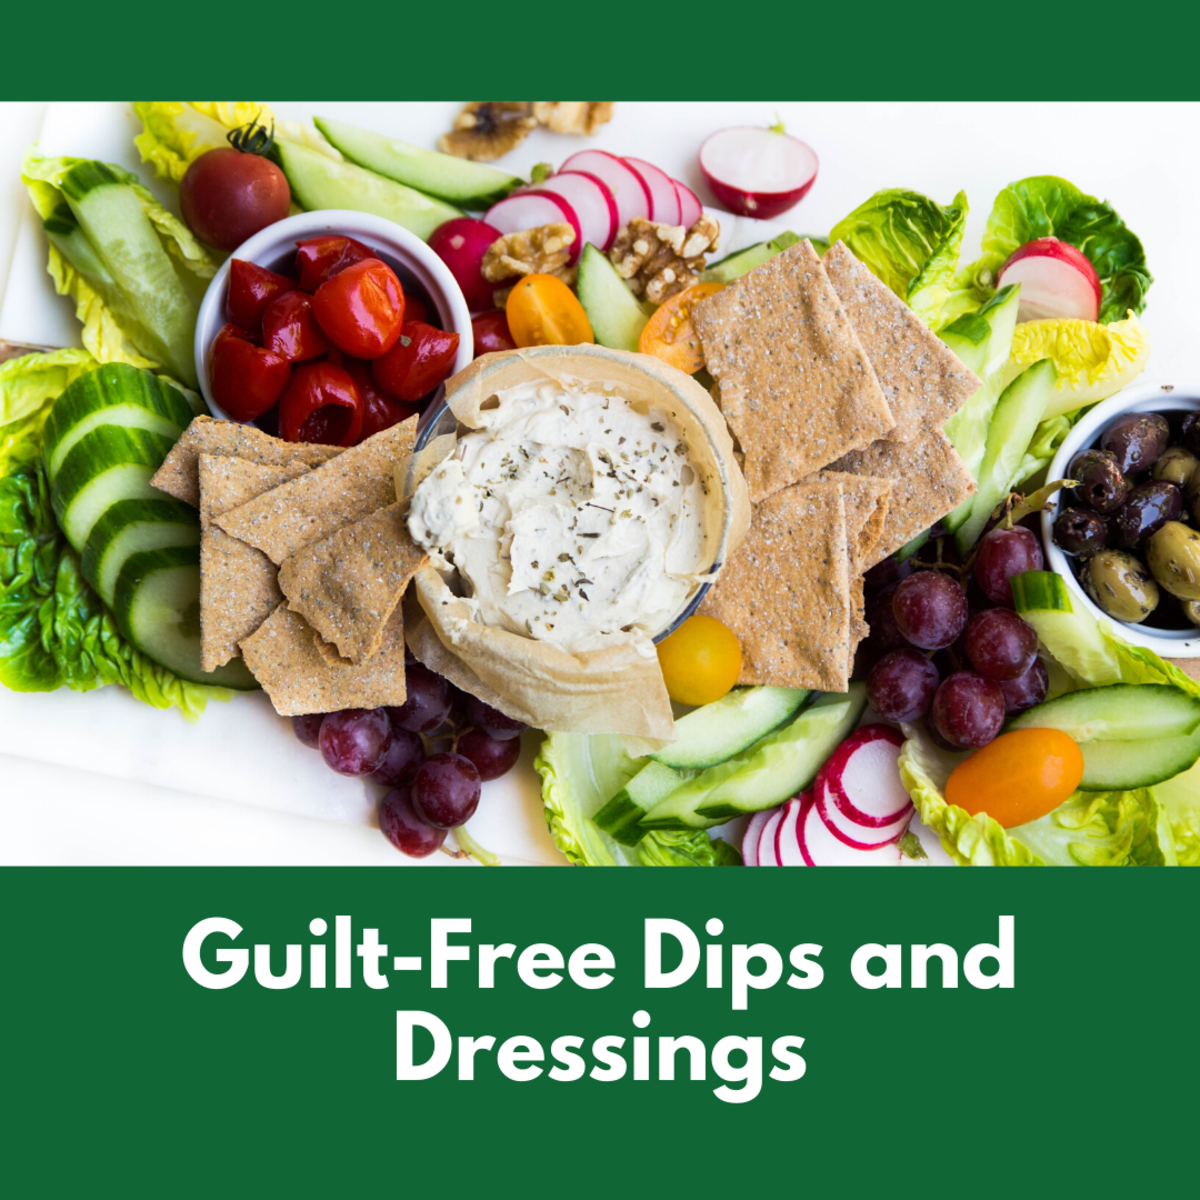 A yogurt dip is a great substitute for cheesy dips.